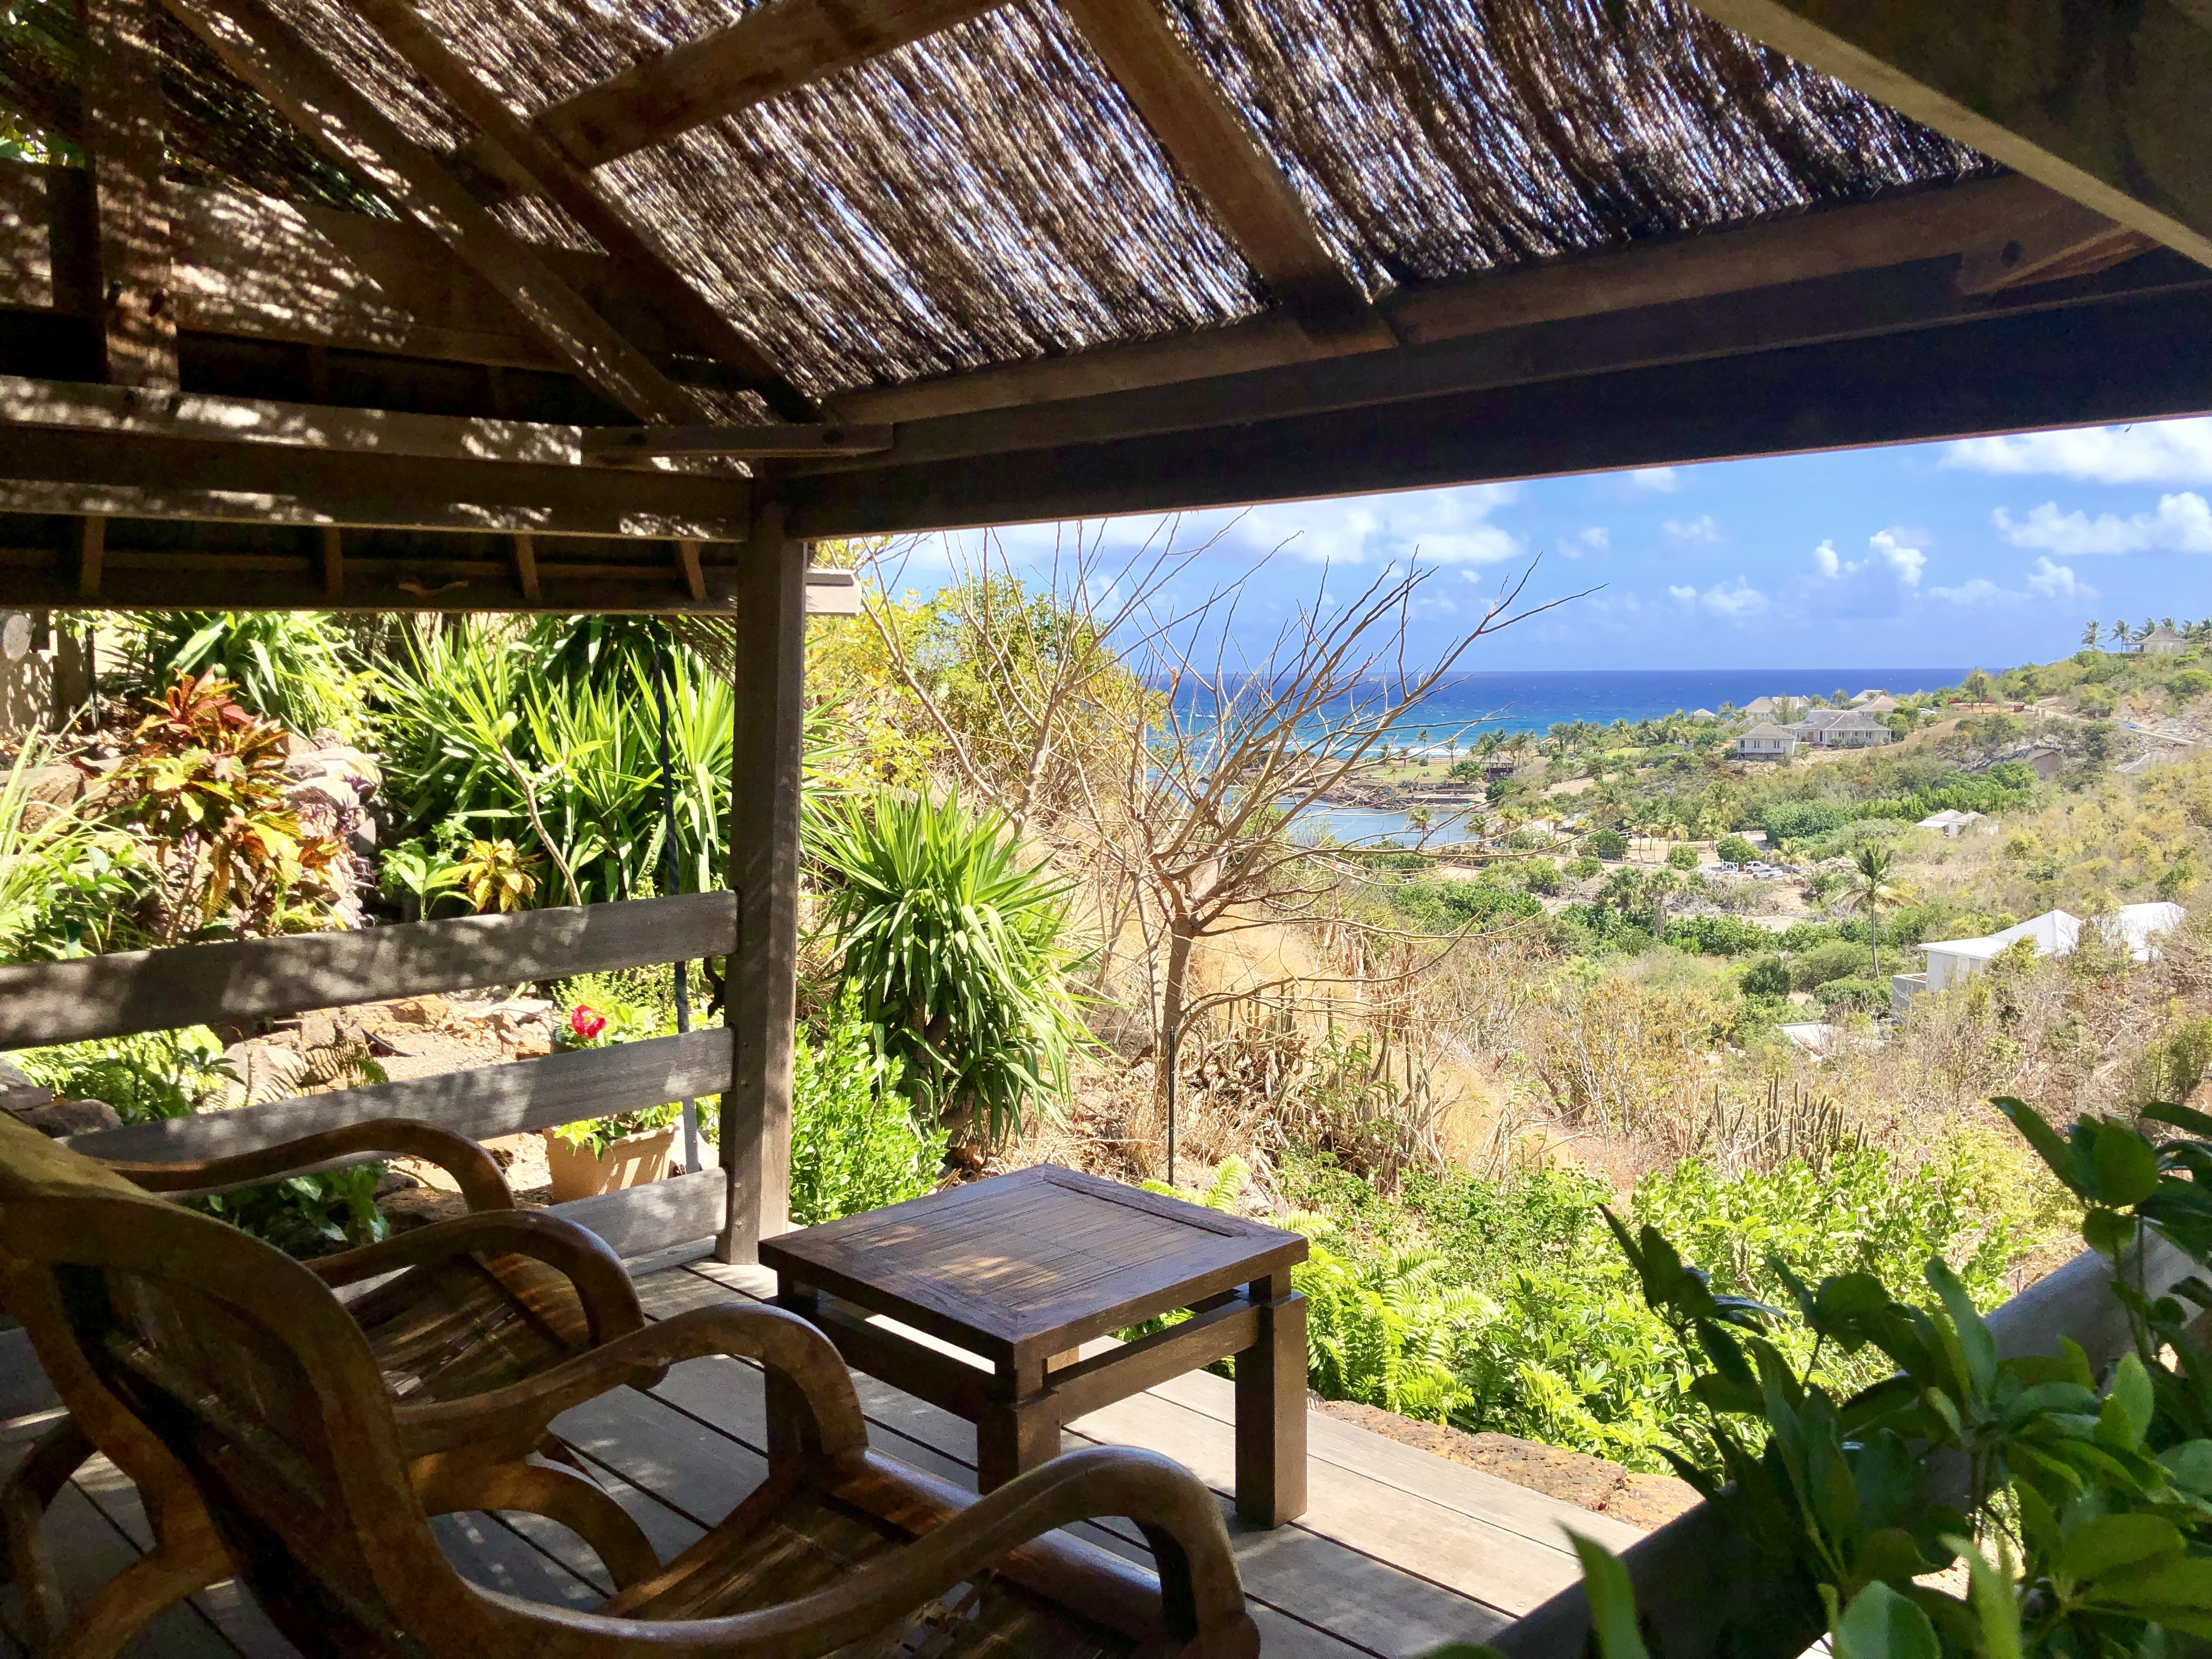 St Barth AirBNB views